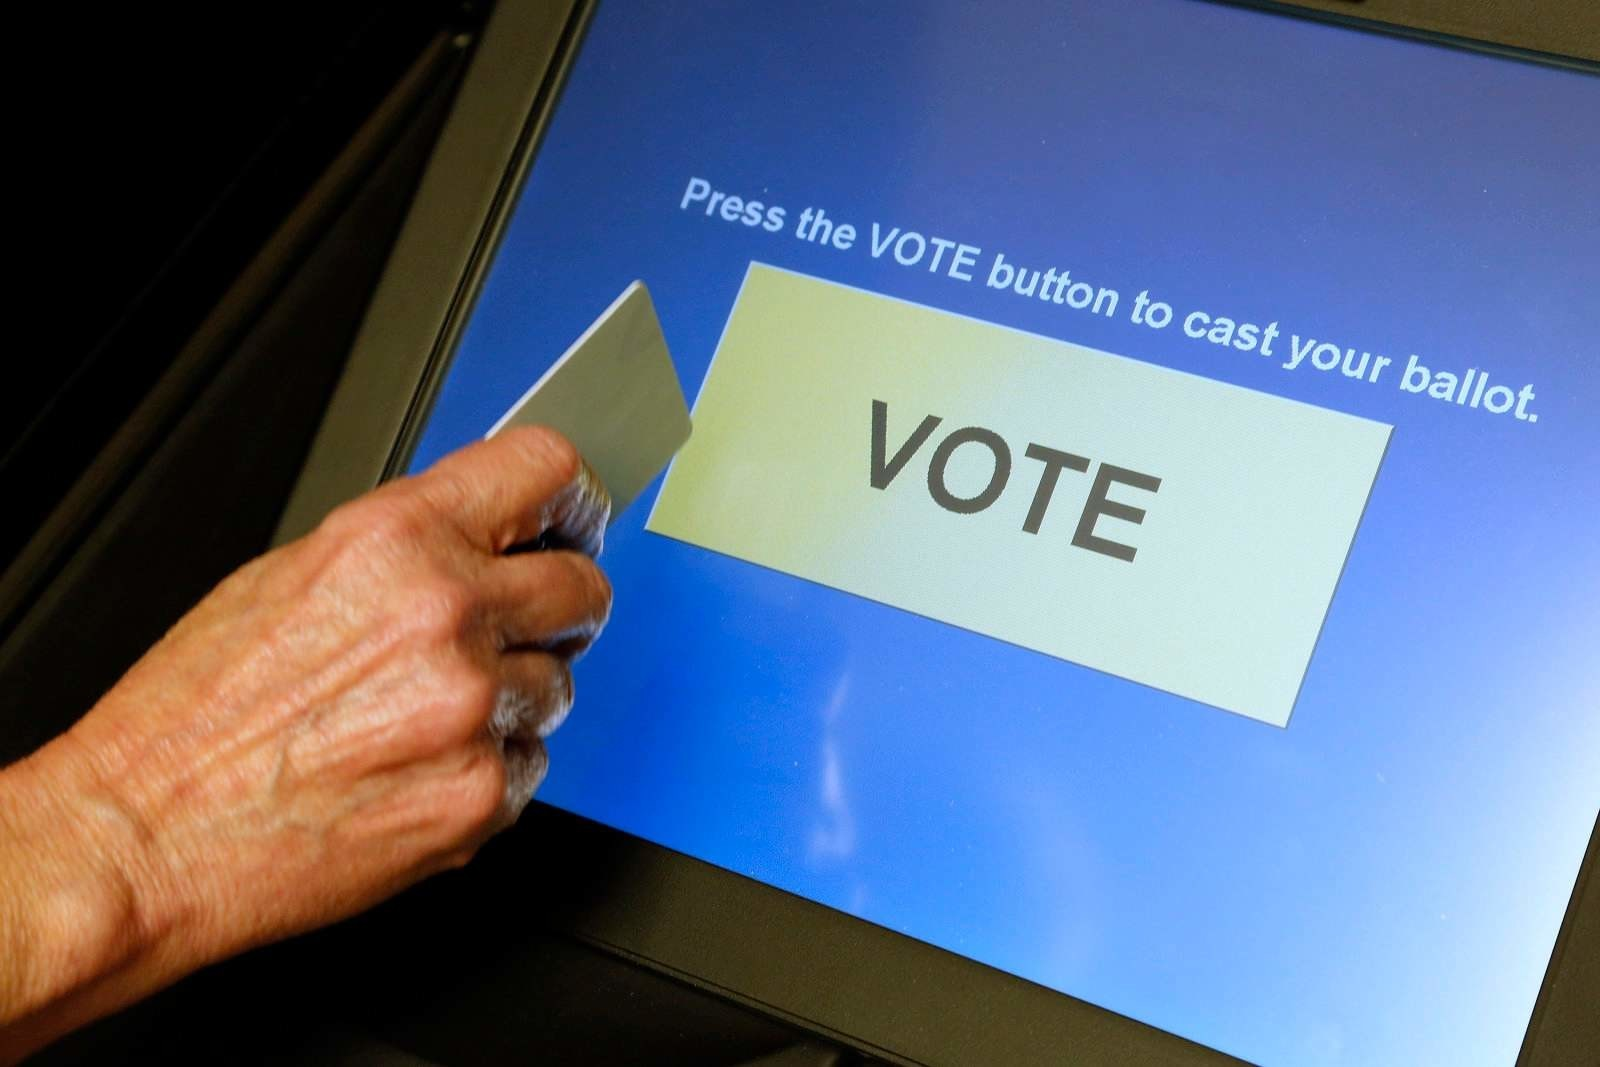 Virginia halts use of voting machines considered vulnerable to hacking